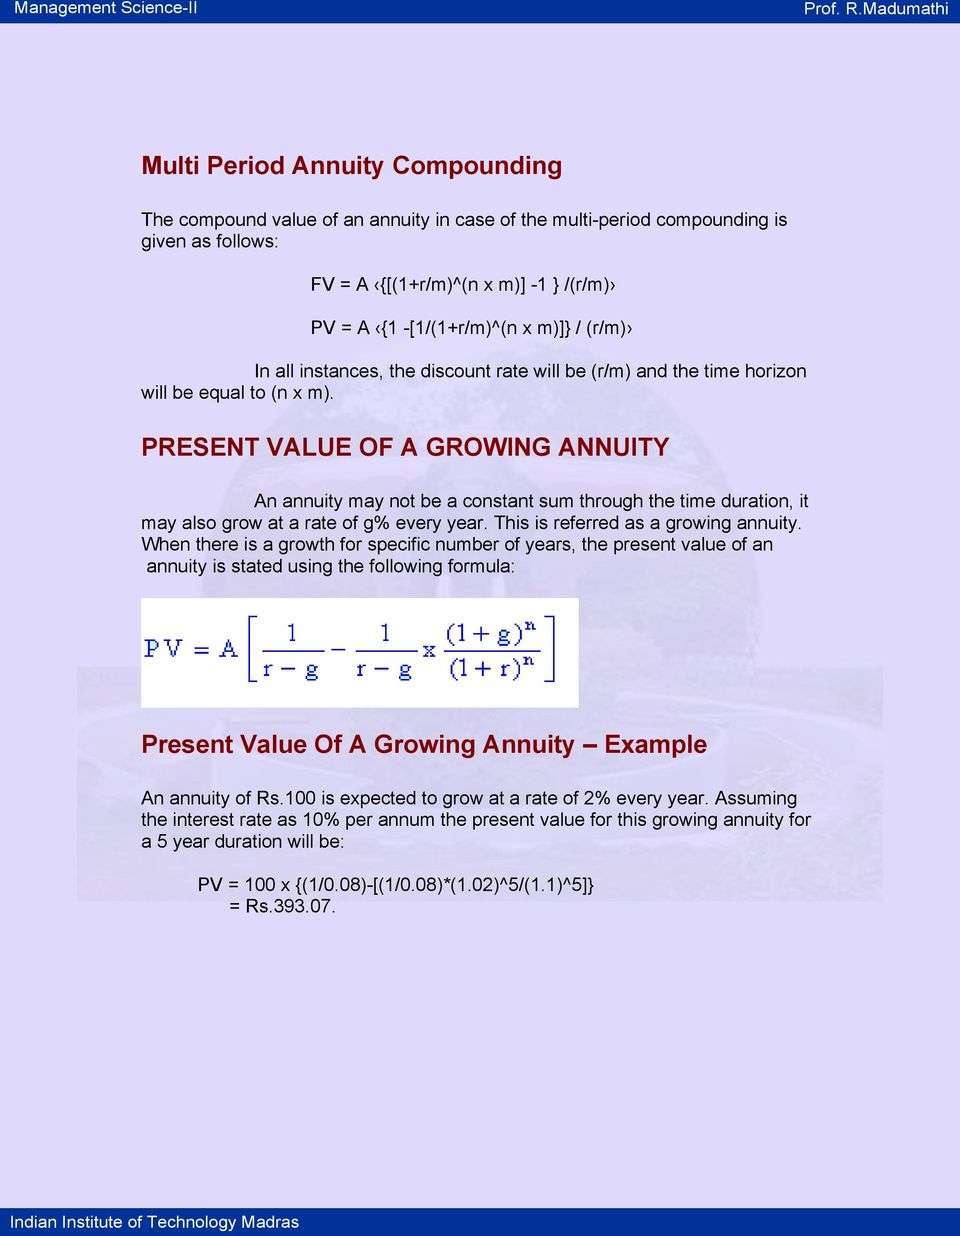 PRESENT VALUE OF A GROWING ANNUITY An annuity may not be a constant sum through the time duration, it may also grow at a rate of g% every year. This is referred as a growing annuity.